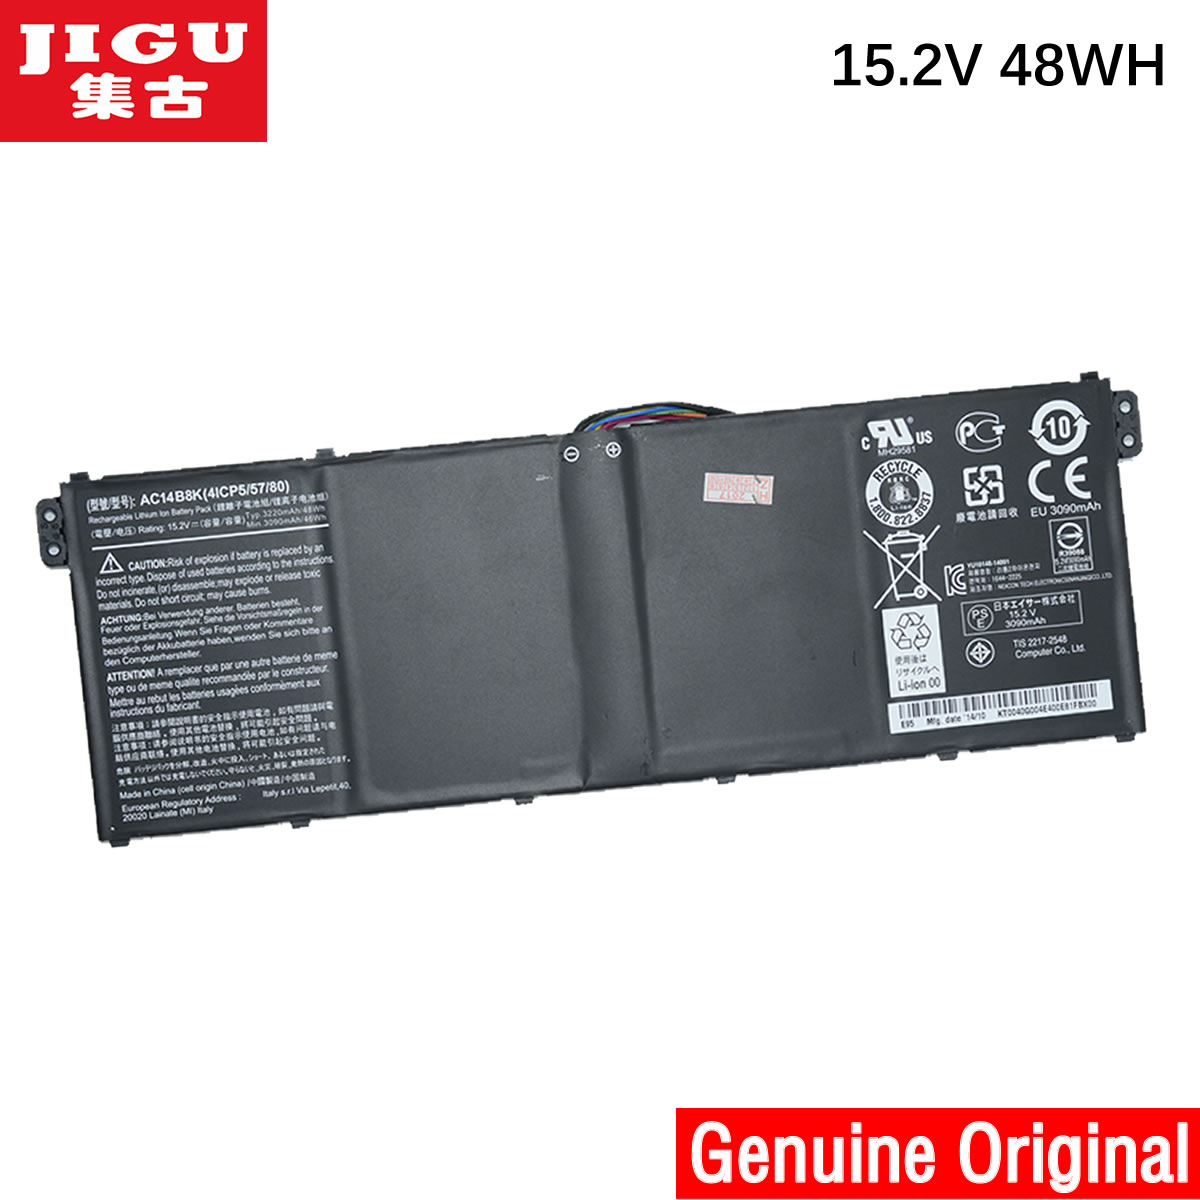 JIGU Original Laptop Battery AC14B8K FOR Acer Aspire E3-111 E3-112 CB3-111 CB5-311 ES1-511 ES1-512 E5-771G V3-111 V3-371 ES1-711JIGU Original Laptop Battery AC14B8K FOR Acer Aspire E3-111 E3-112 CB3-111 CB5-311 ES1-511 ES1-512 E5-771G V3-111 V3-371 ES1-711